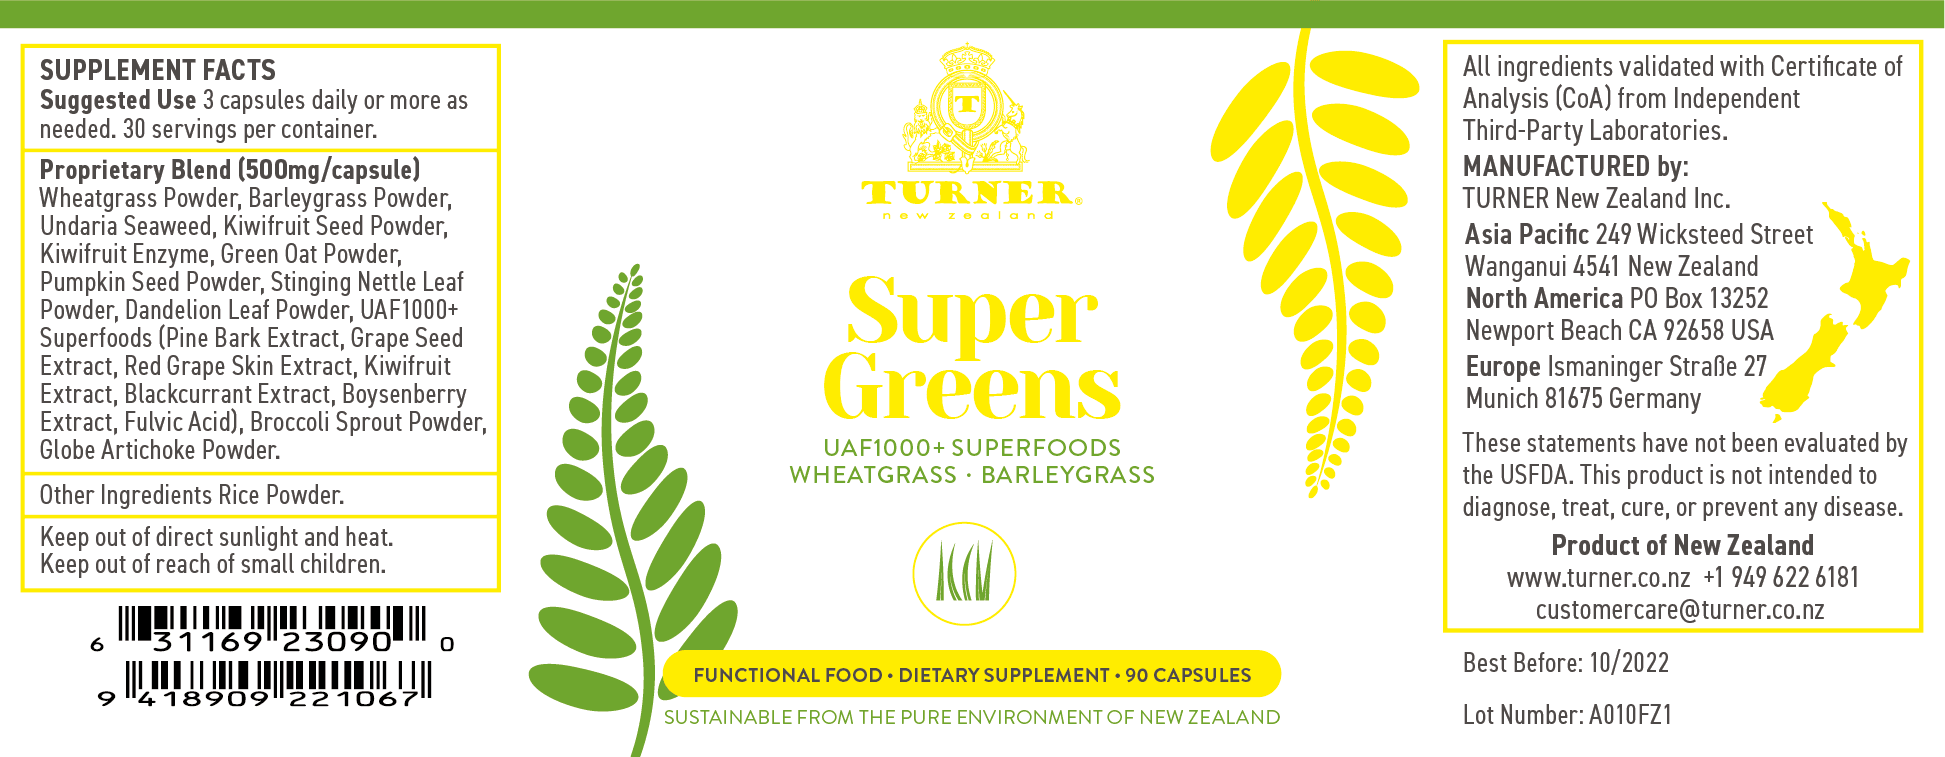 Super Greens - TURNER New Zealand